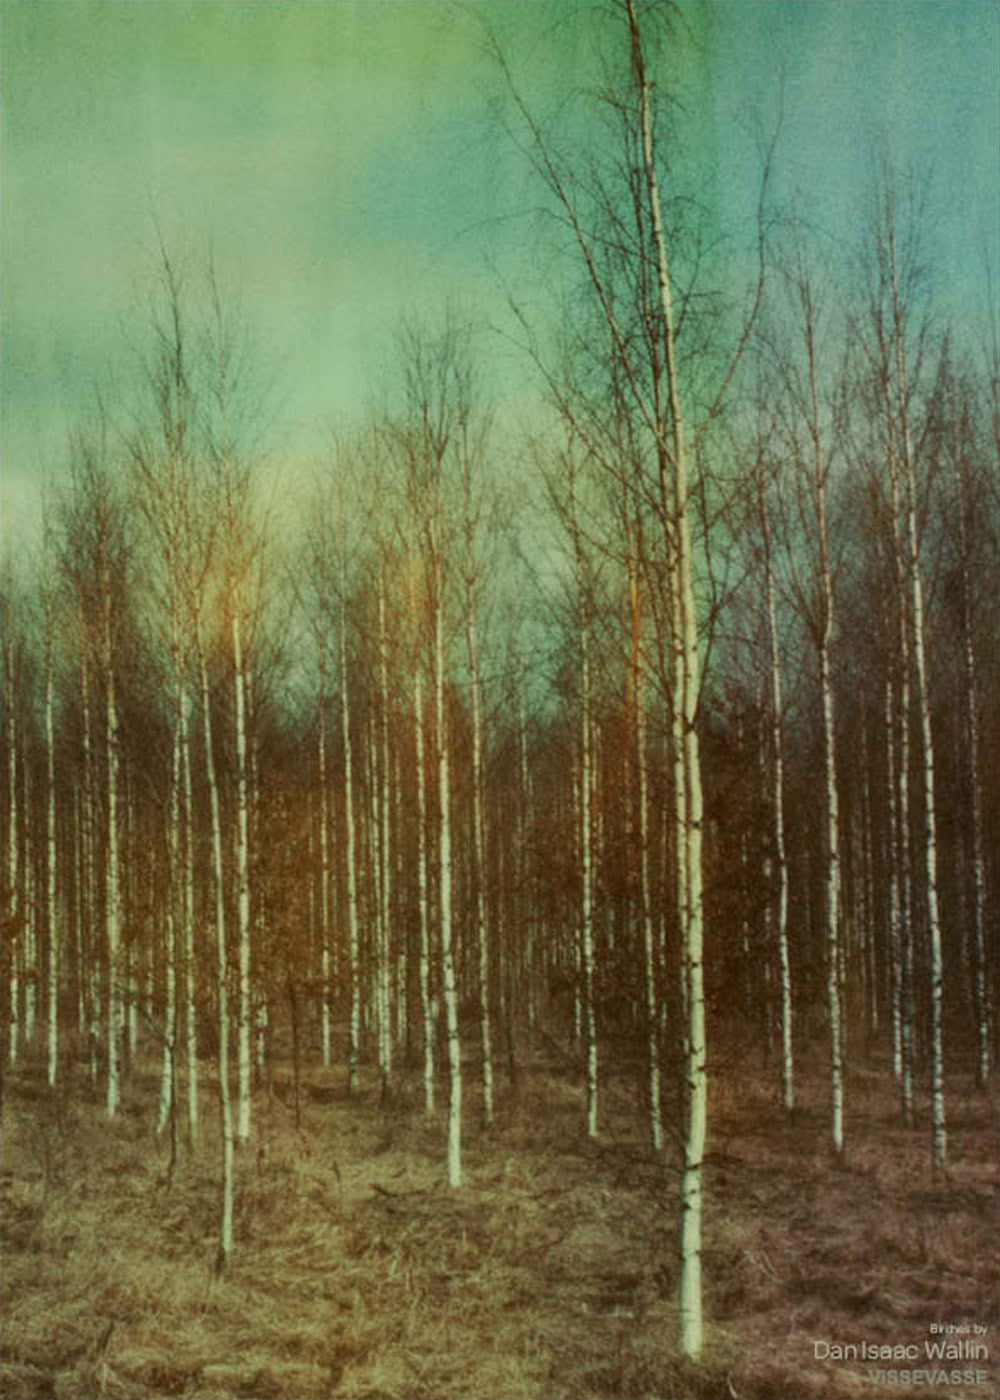 Birches fra Dan Isaac Wallin